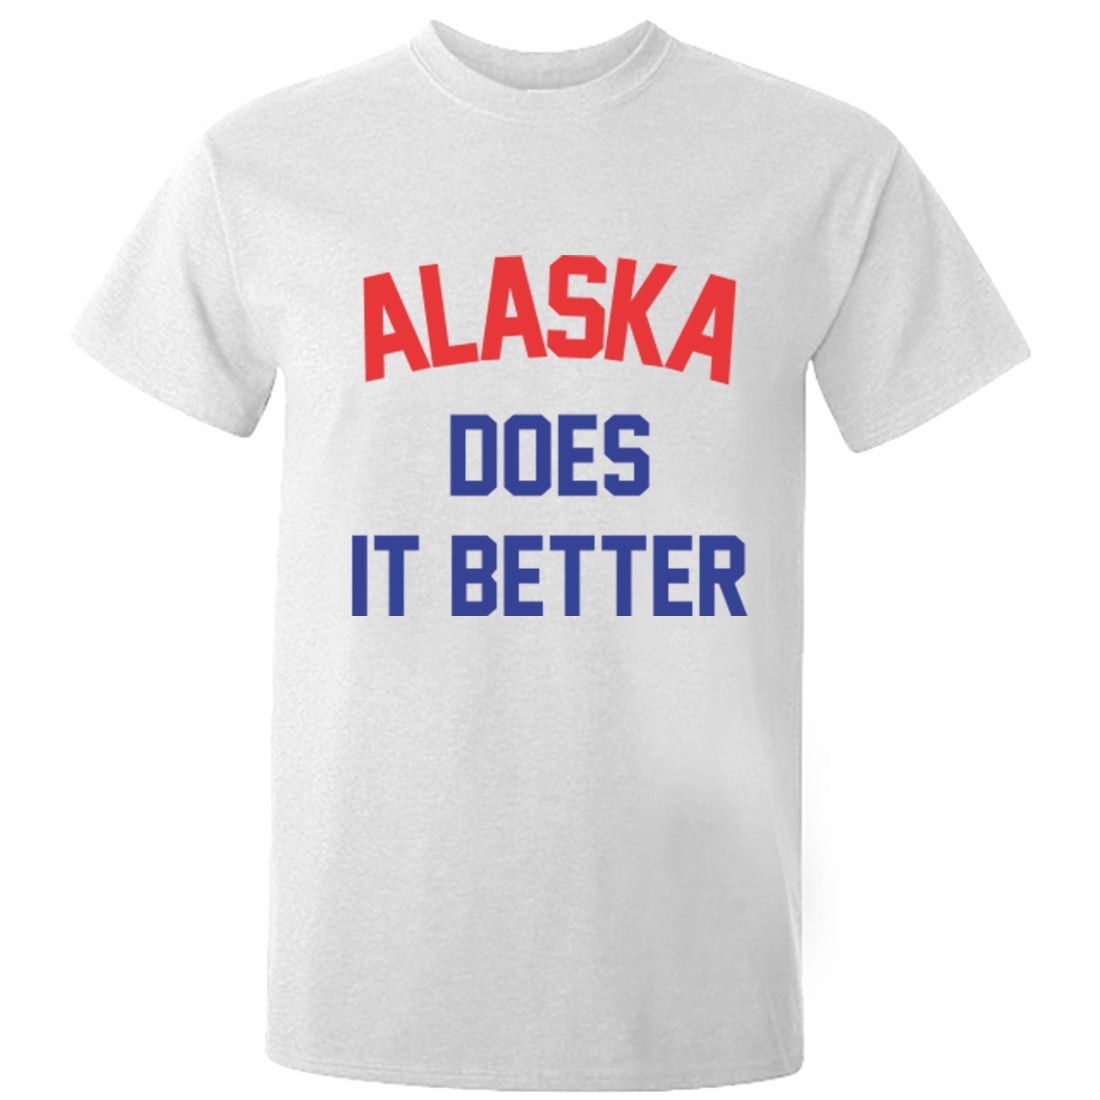 Alaska Does It Better Unisex Fit T-Shirt K1144